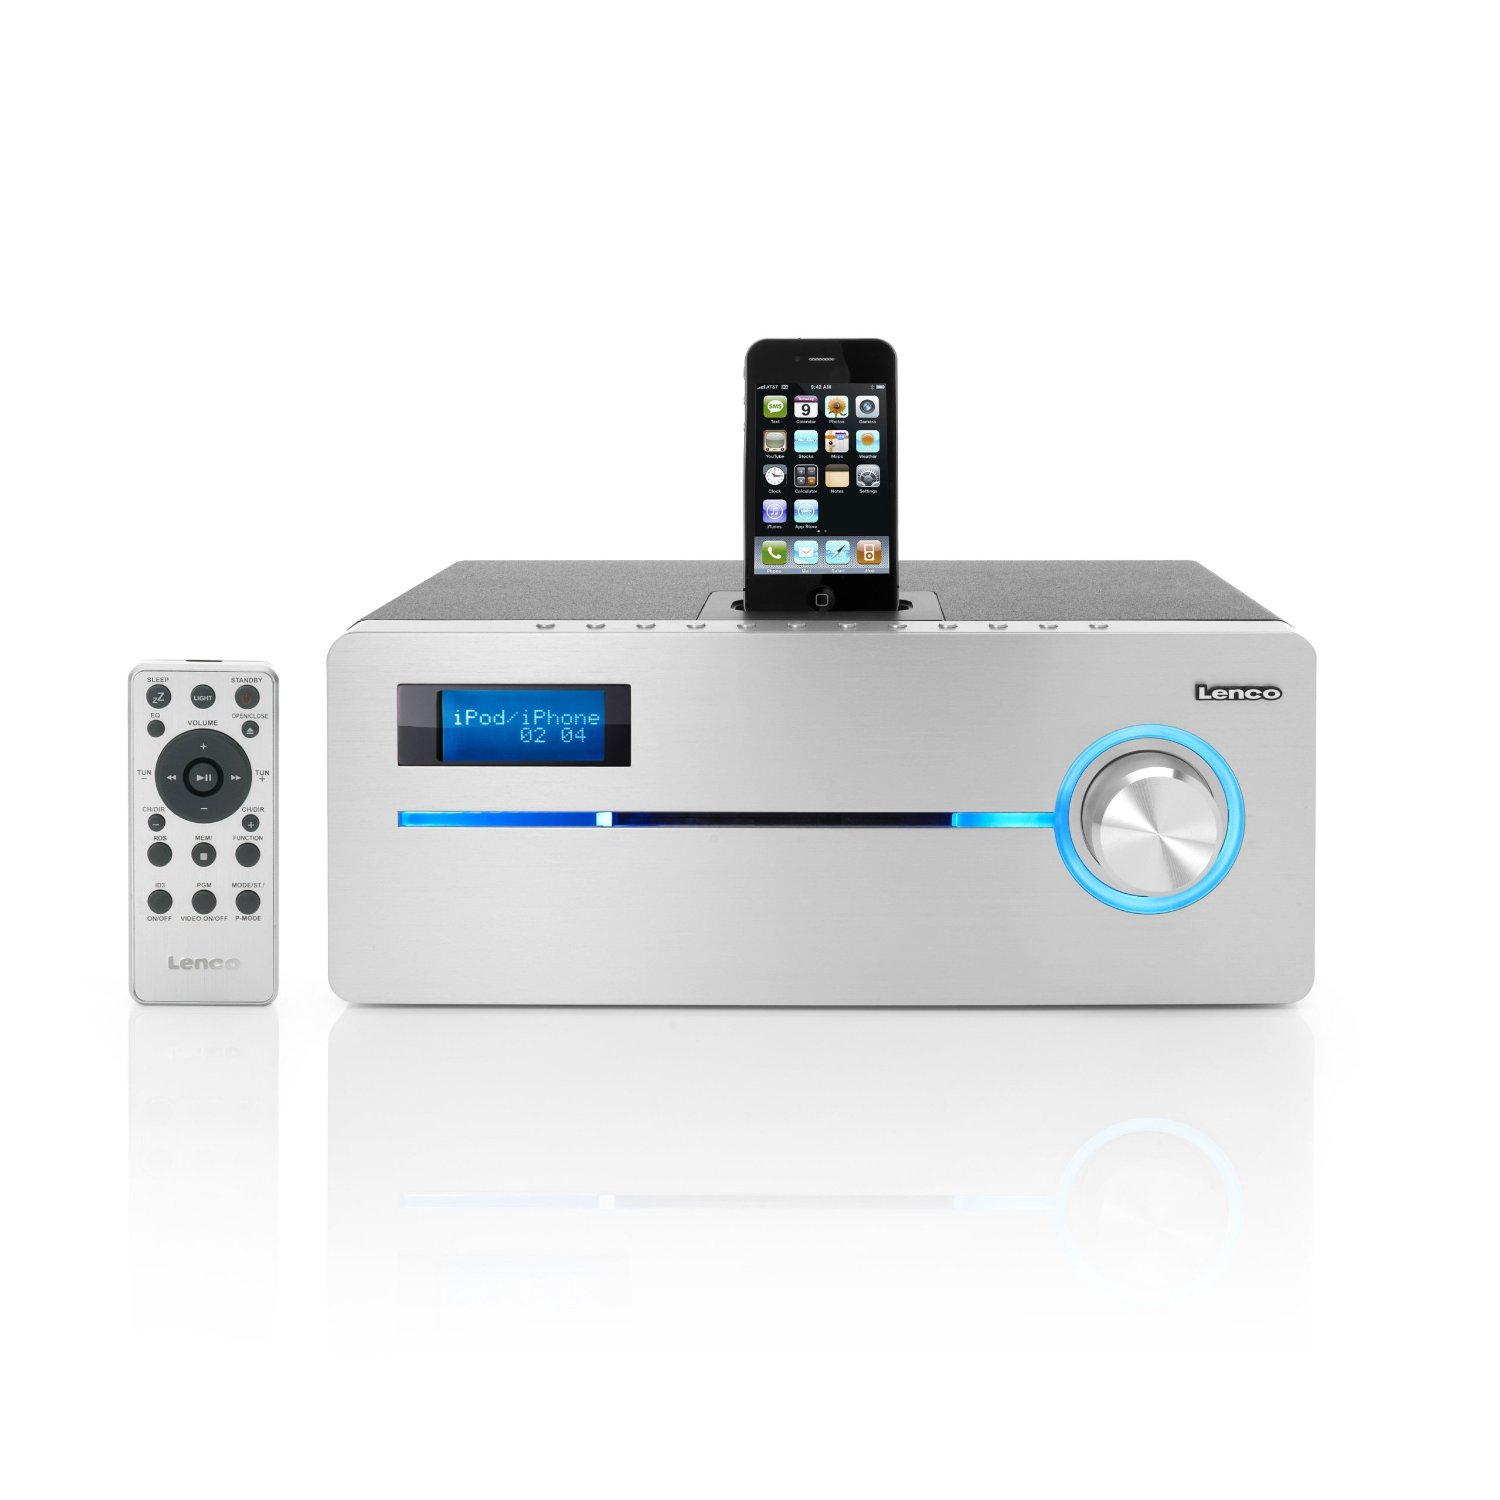 lenco ipd9000 dab iphone ipod docking station mit fm radio cd mp3 player ebay. Black Bedroom Furniture Sets. Home Design Ideas